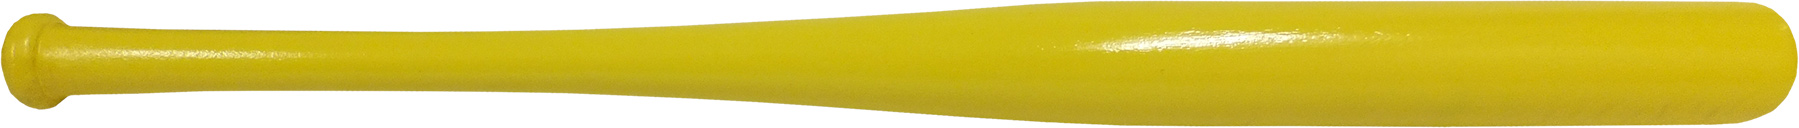 novelty yellow baseball bat souvenir baseball bat